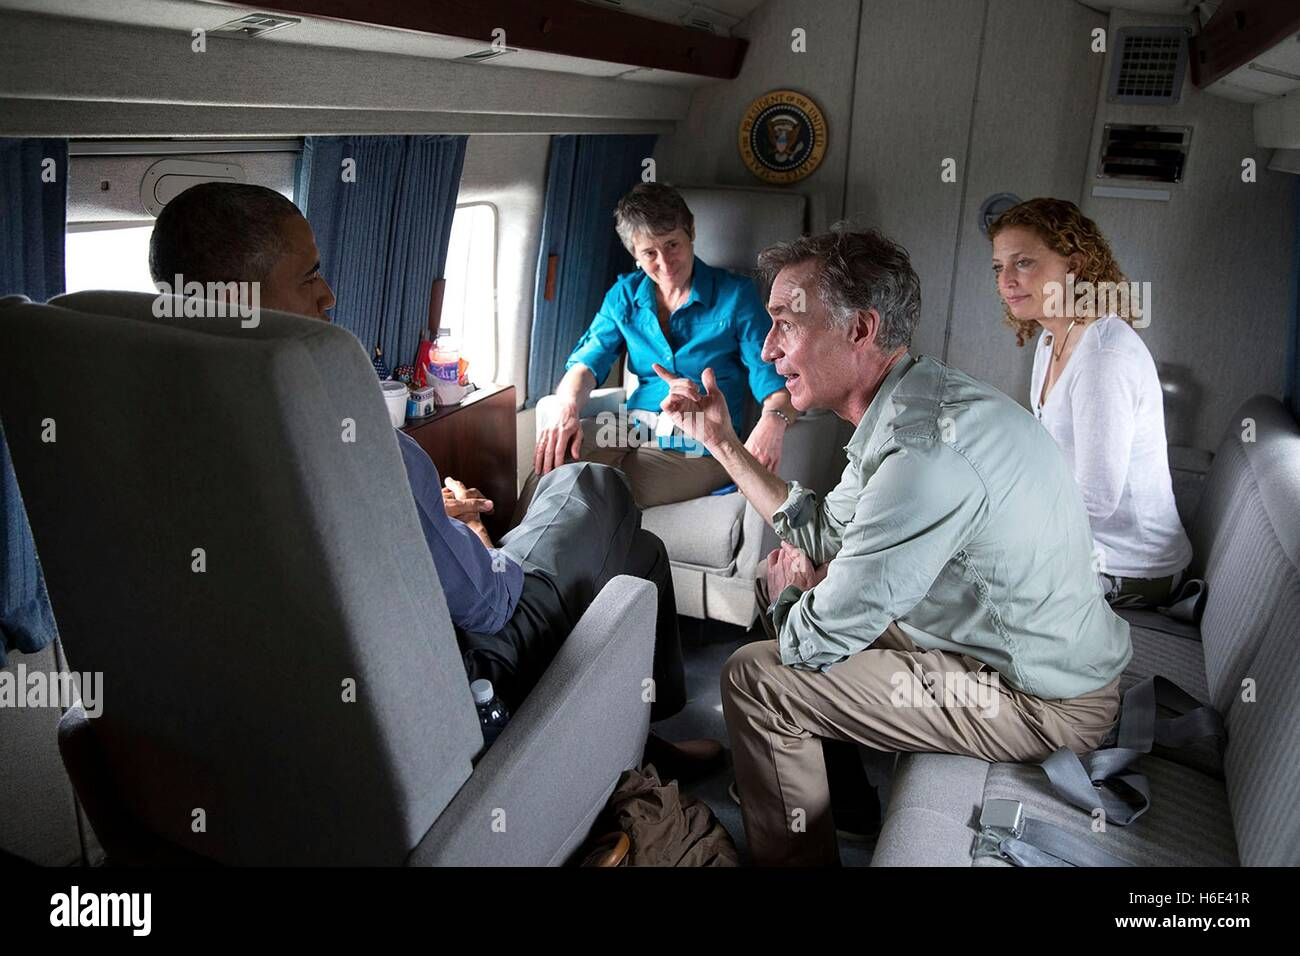 U.S. President Barack Obama talks to Interior Secretary Sally Jewell, Congresswoman Debbie Wasserman Schultz, and - Stock Image